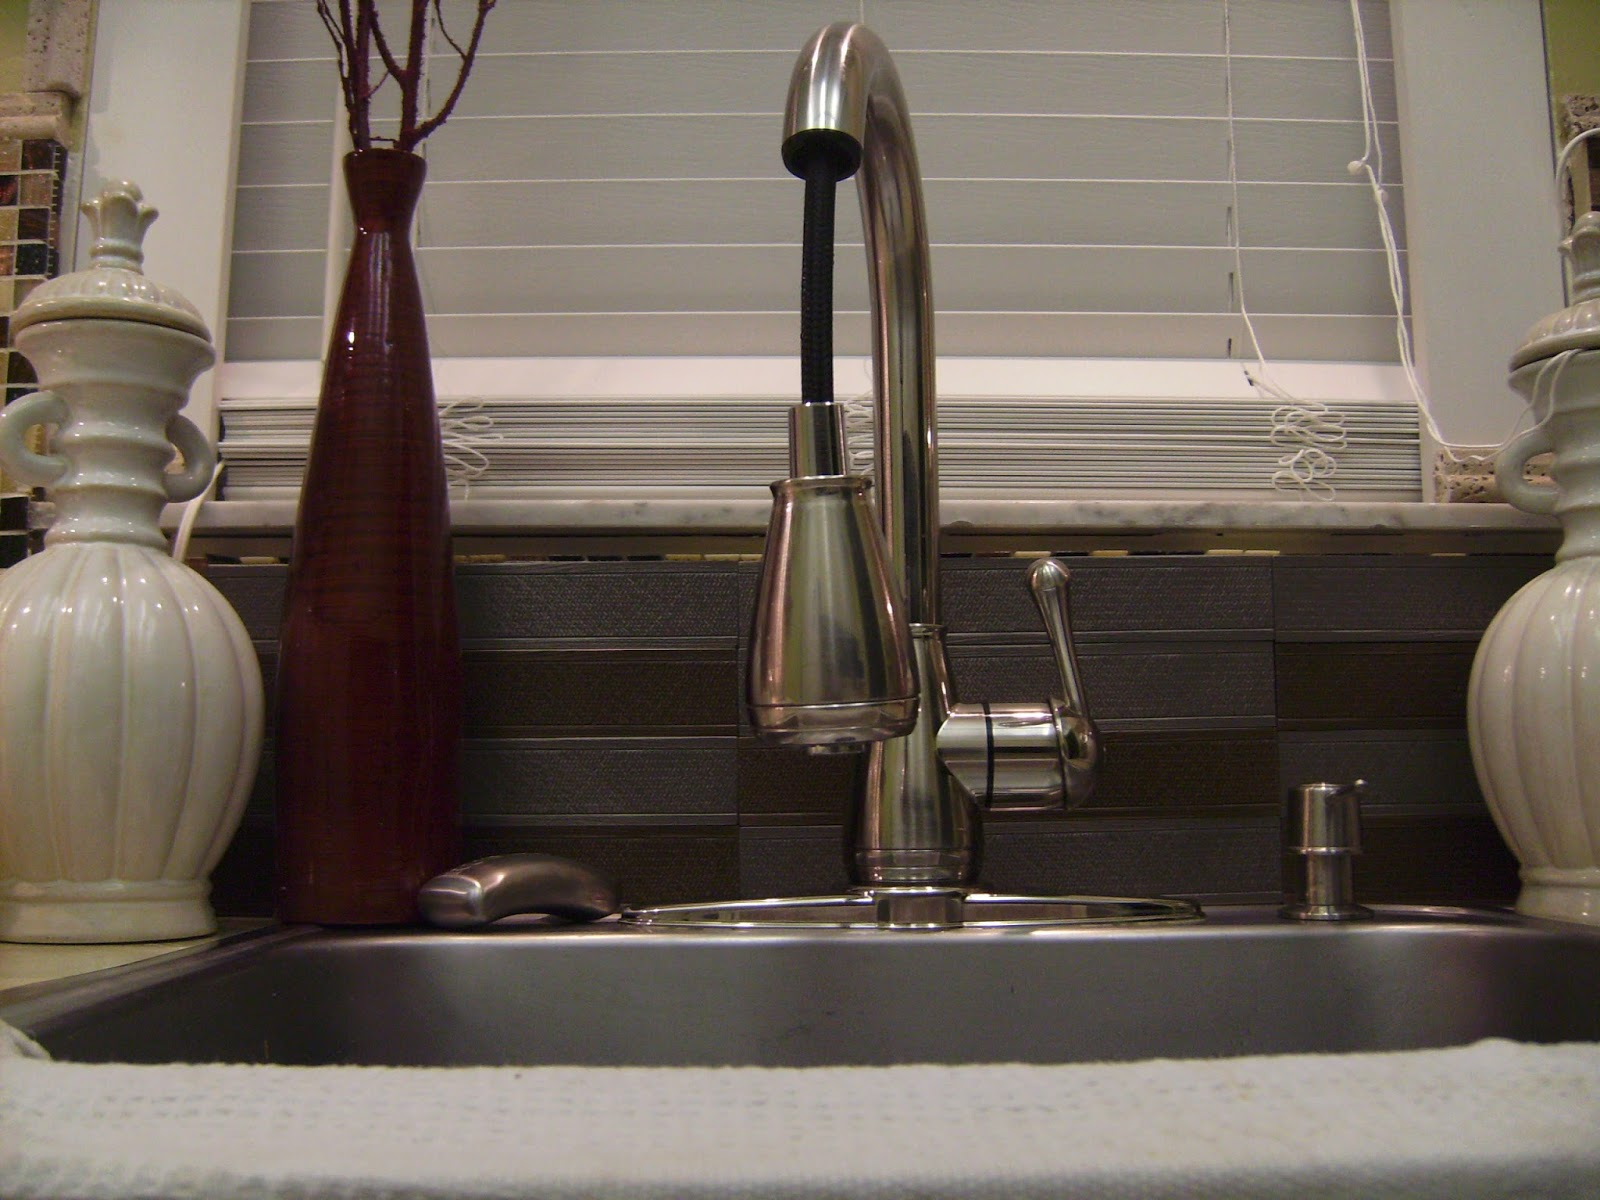 How to Remodel and Decorate a Small Kitchen. Adding decorative tile back splash.